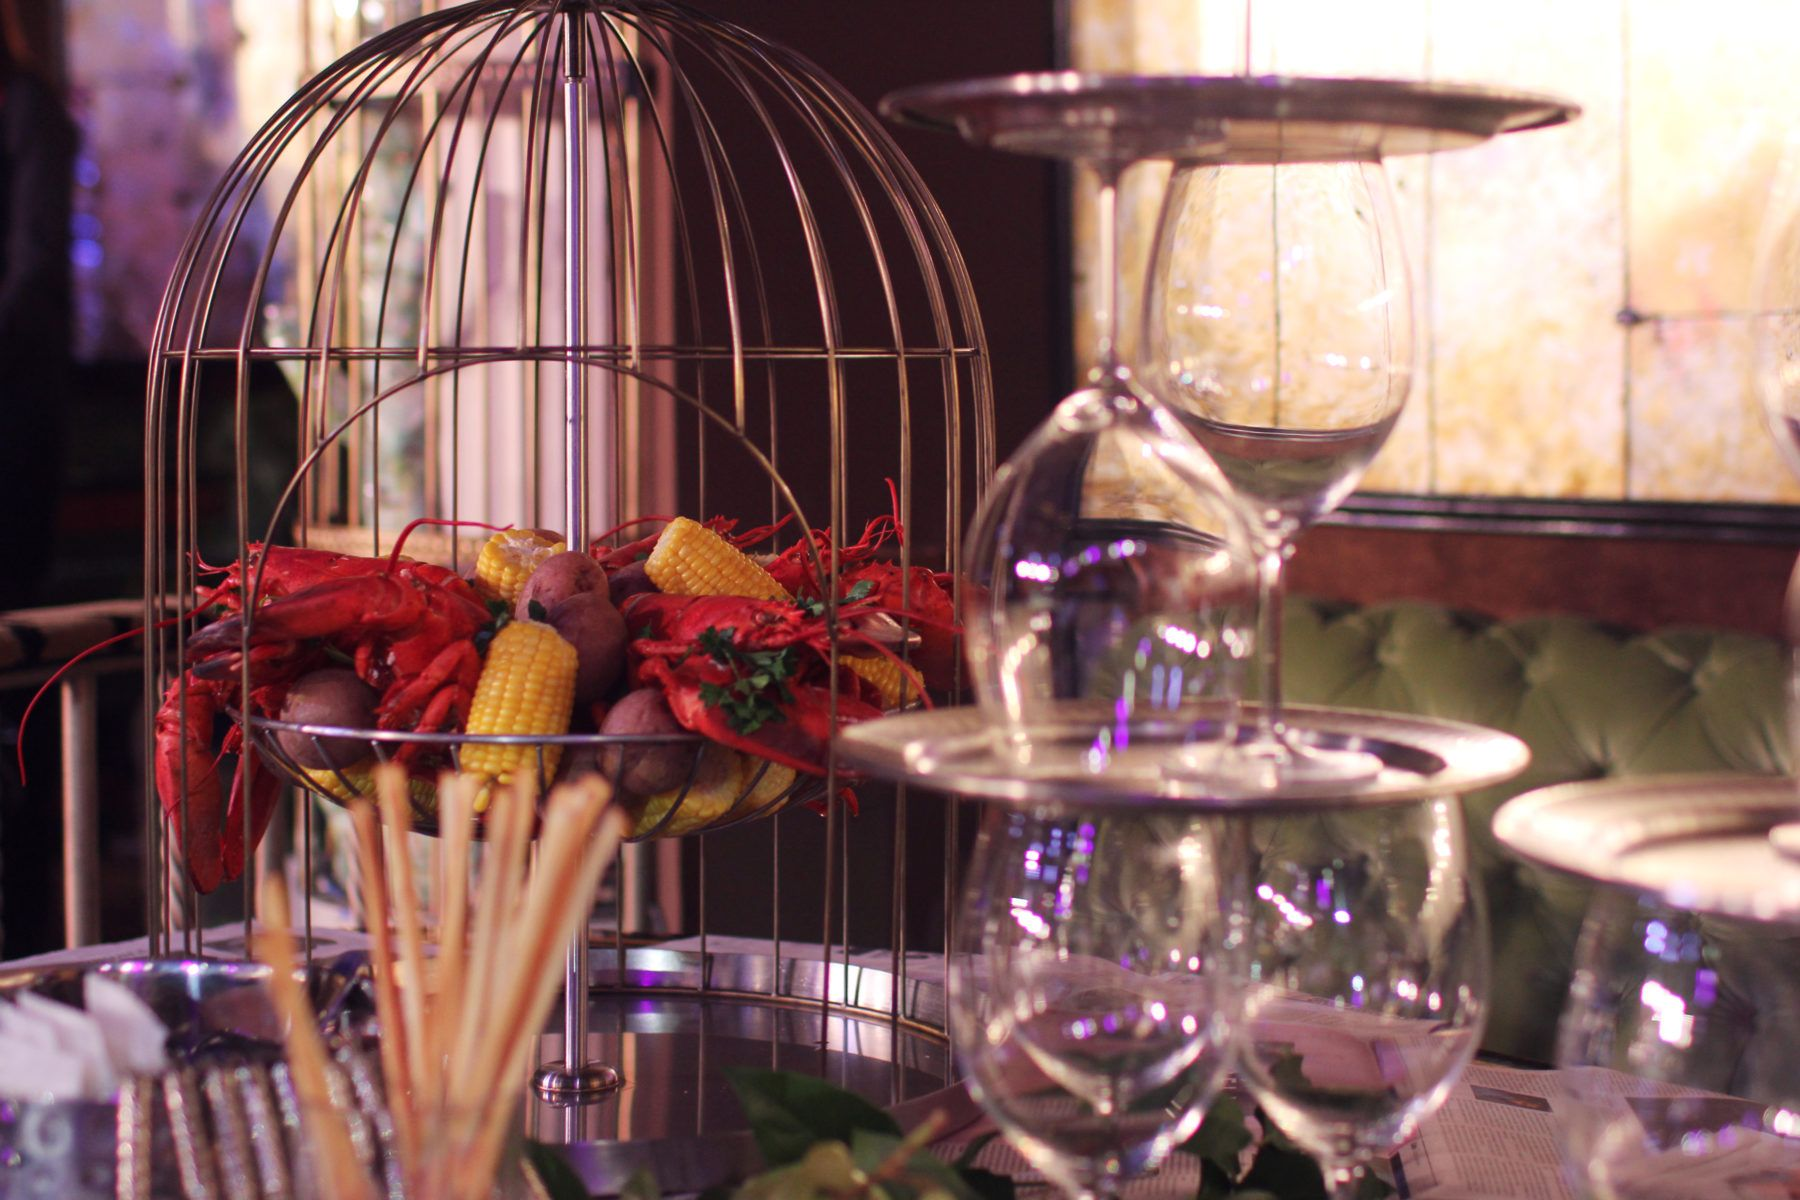 Lobsters and Corn in a cage on a table at The Diamond Horseshoe